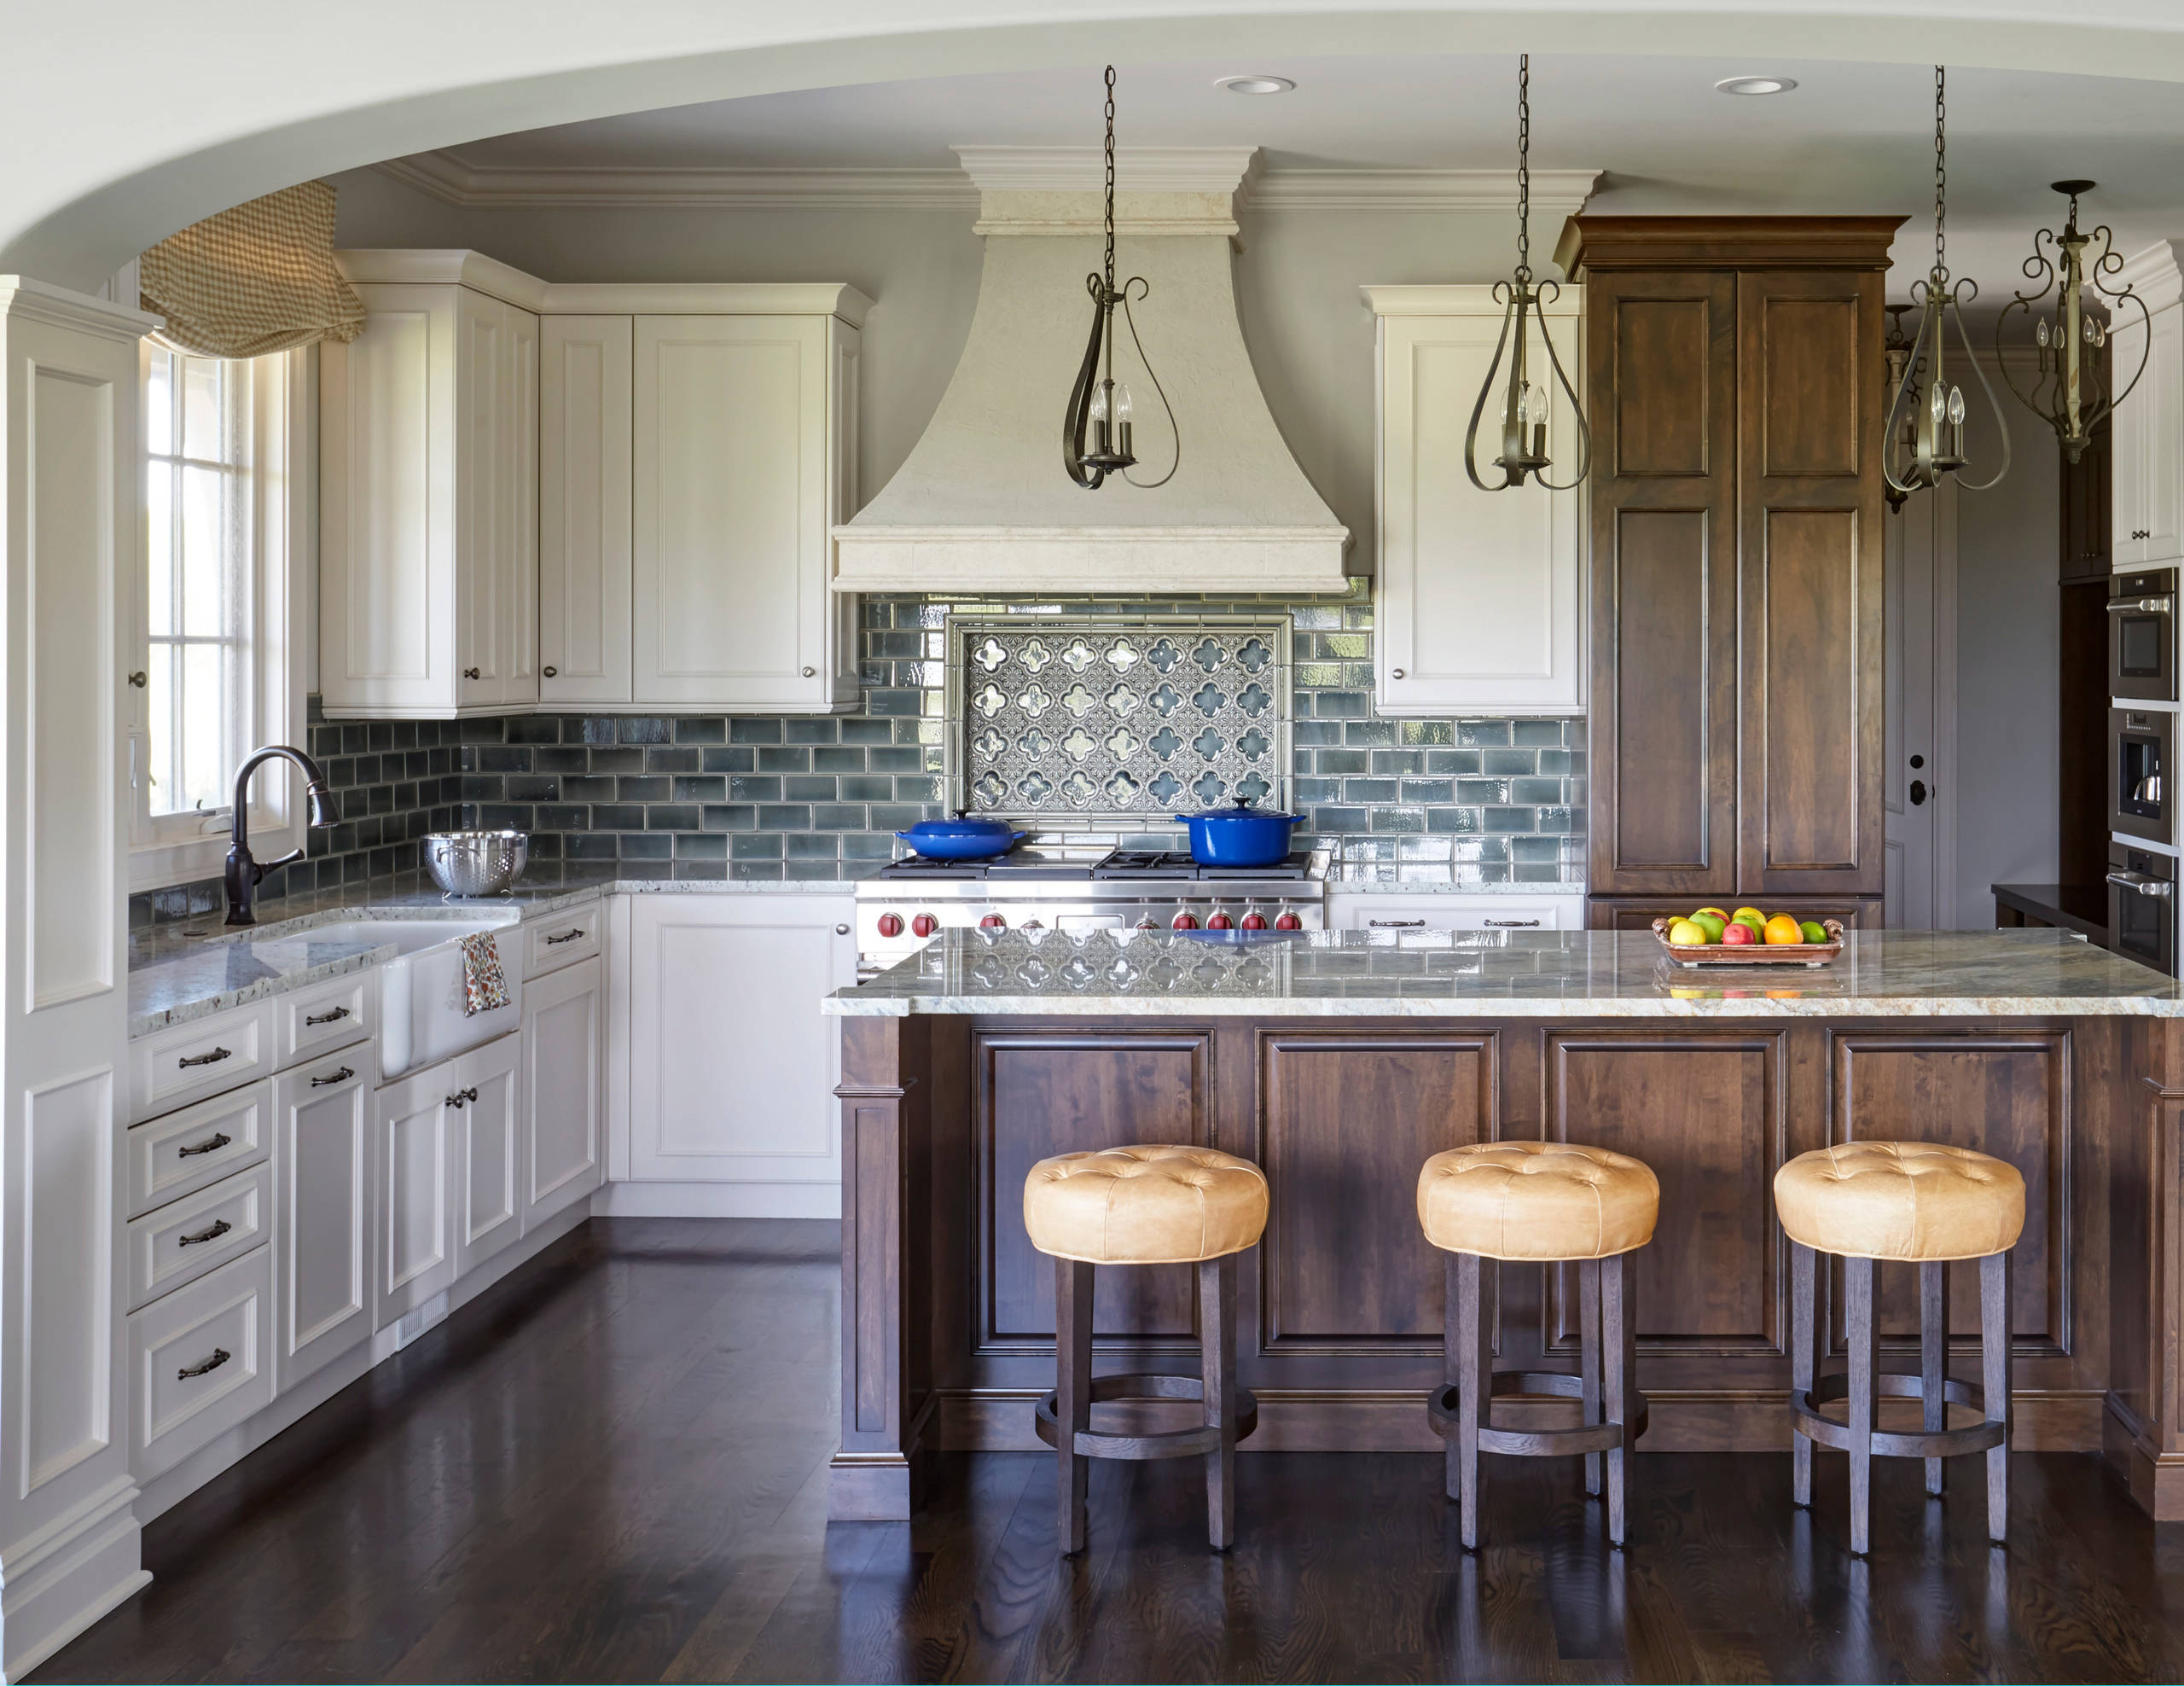 4 X 4 Tile Backsplash Ideas Photos Houzz